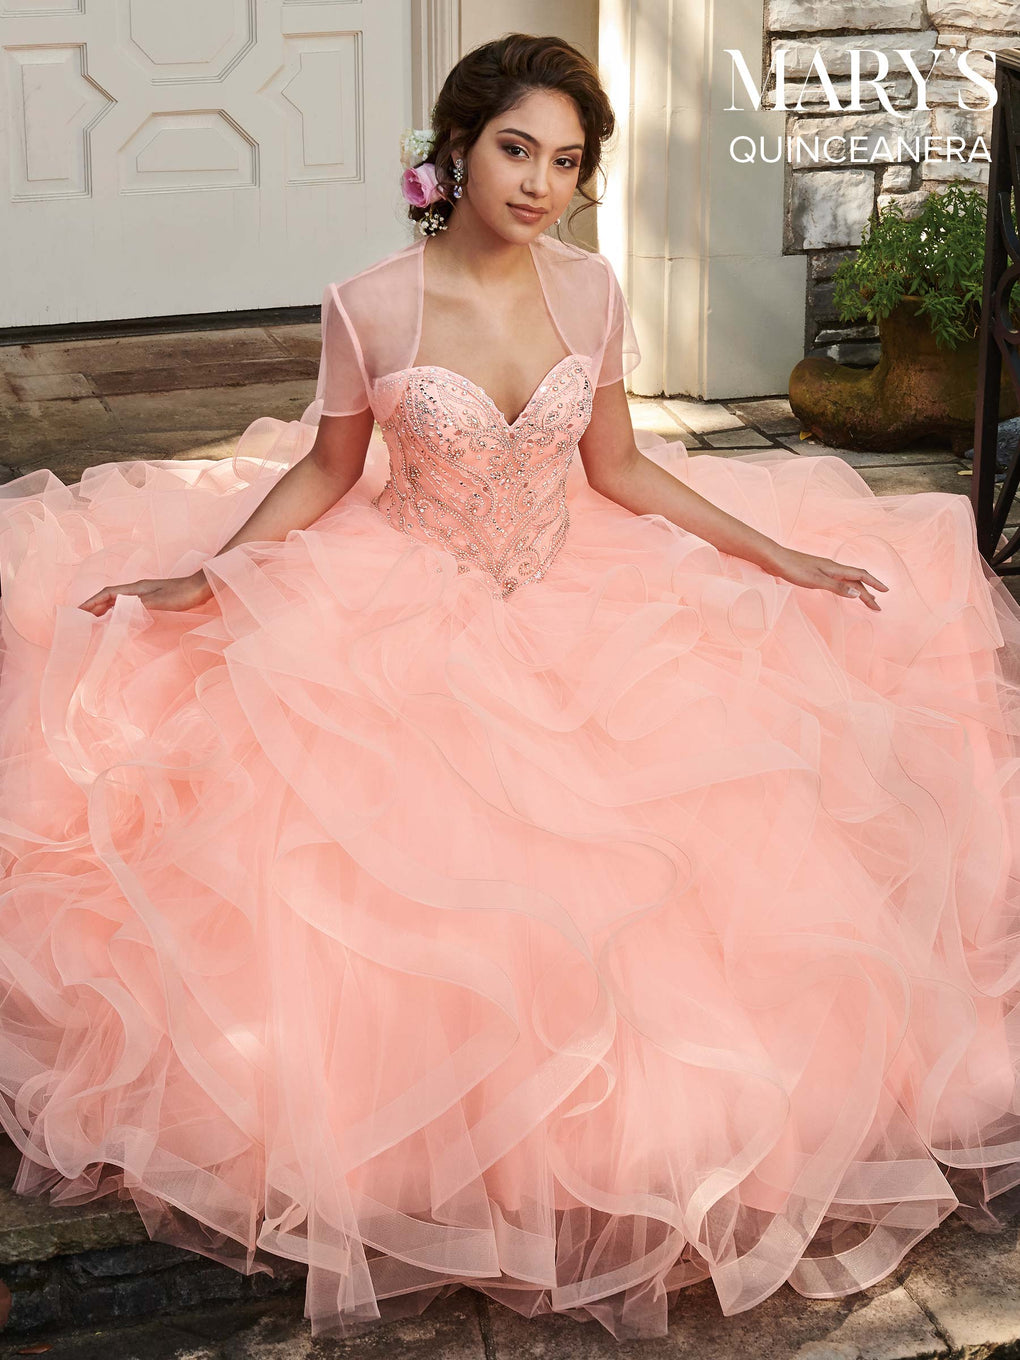 Marys Quinceanera Dresses in Bright Peach, Purple, or White Color